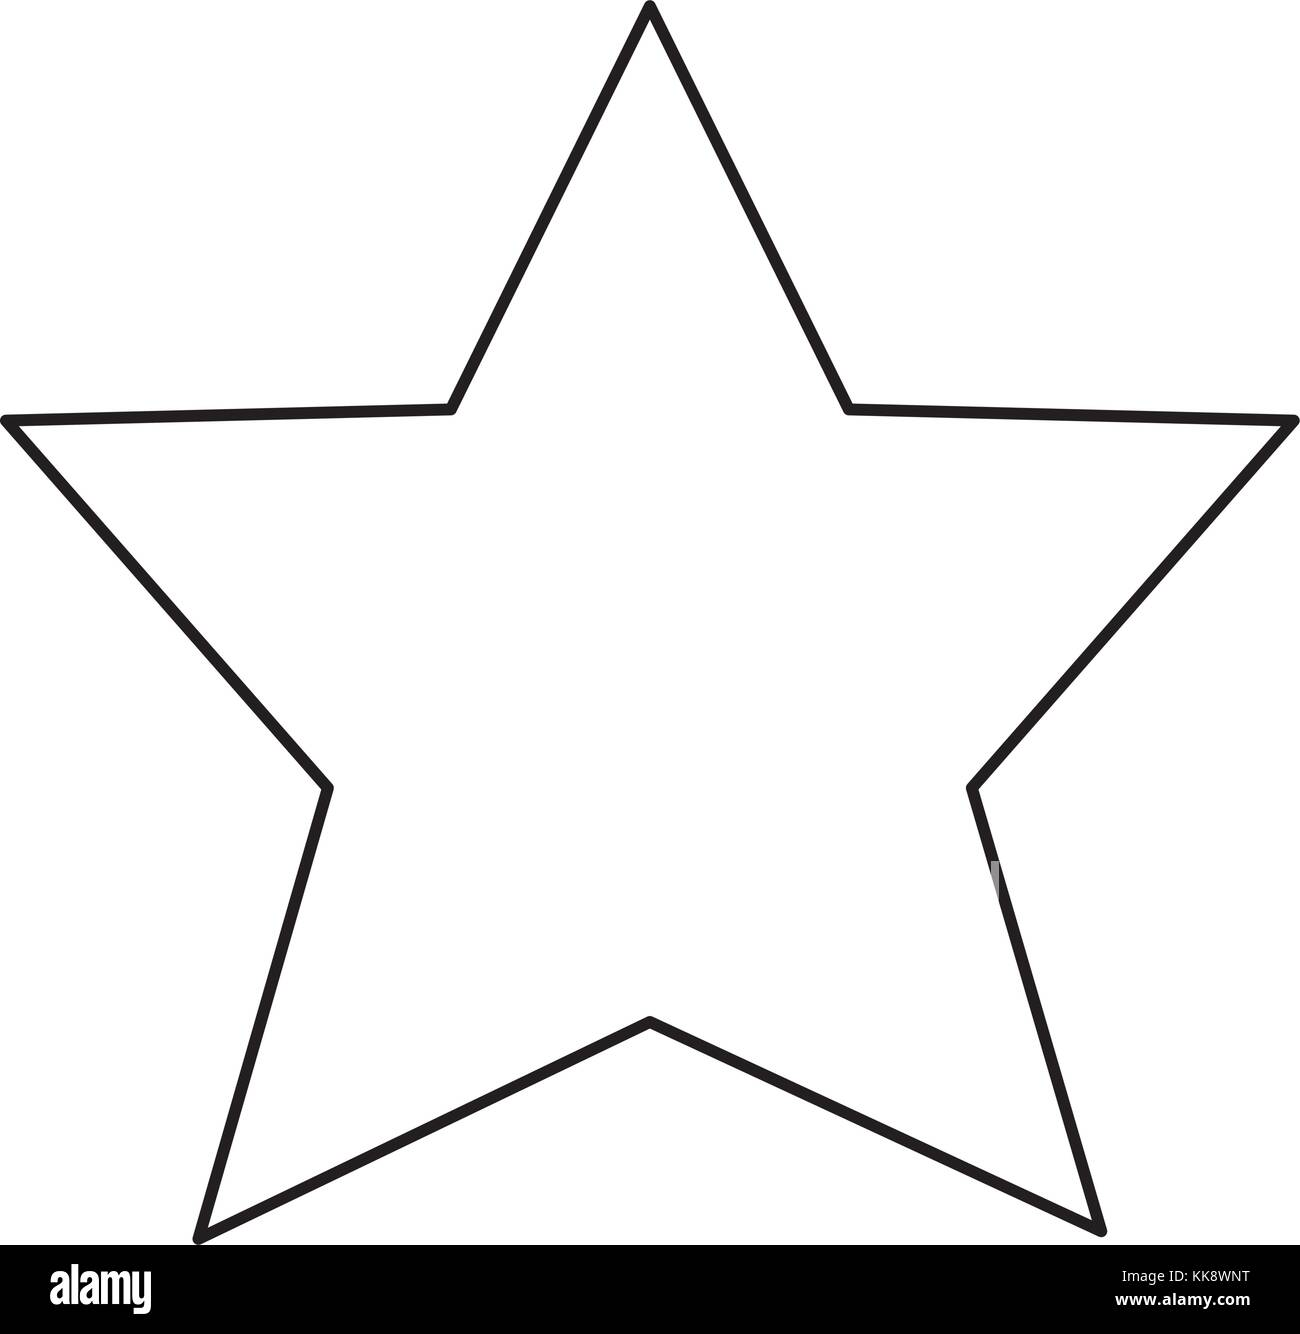 star vector illustration - Stock Image